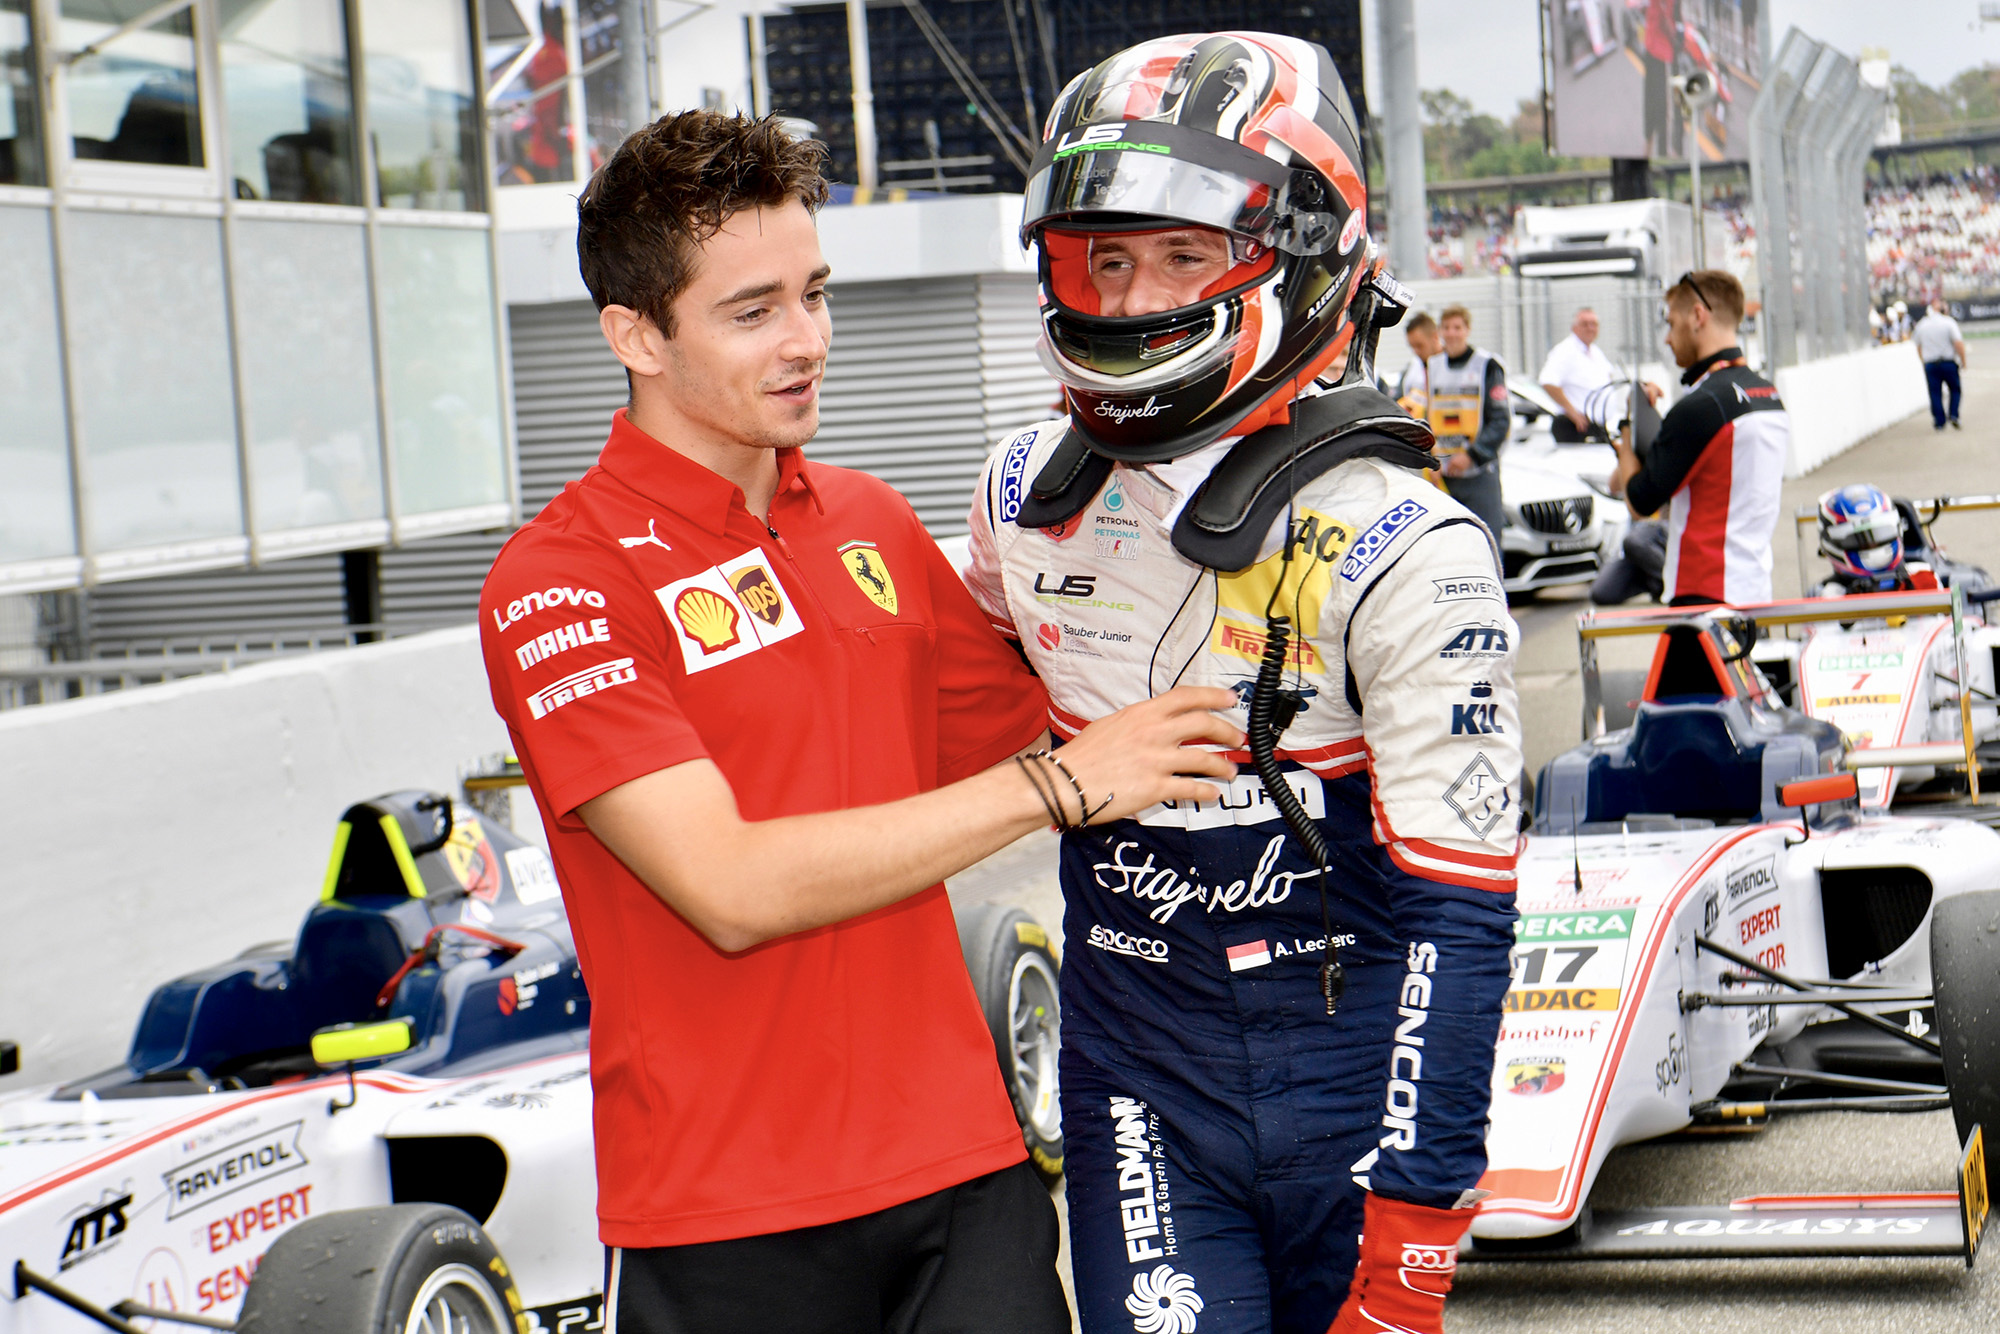 Charles Leclerc congratulates brother Arthur for winning at Hockenheim in F4